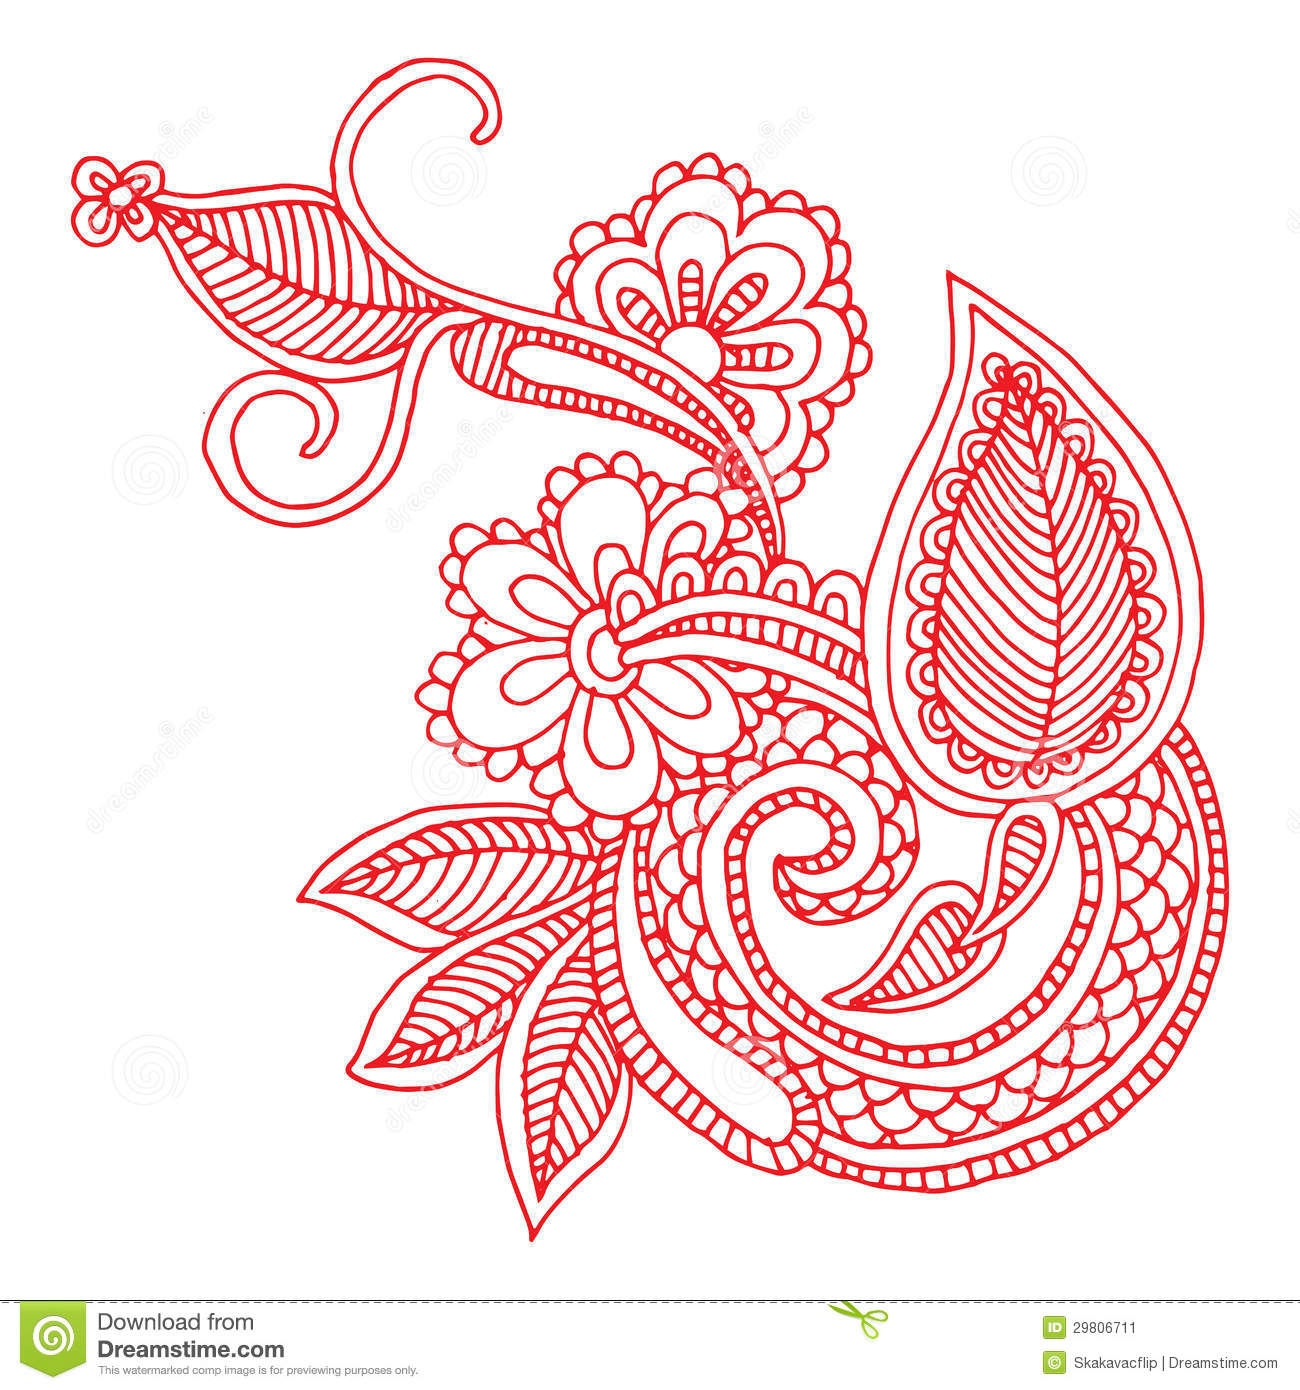 Line Drawing Flower Designs : Neckline embroidery design stock illustration